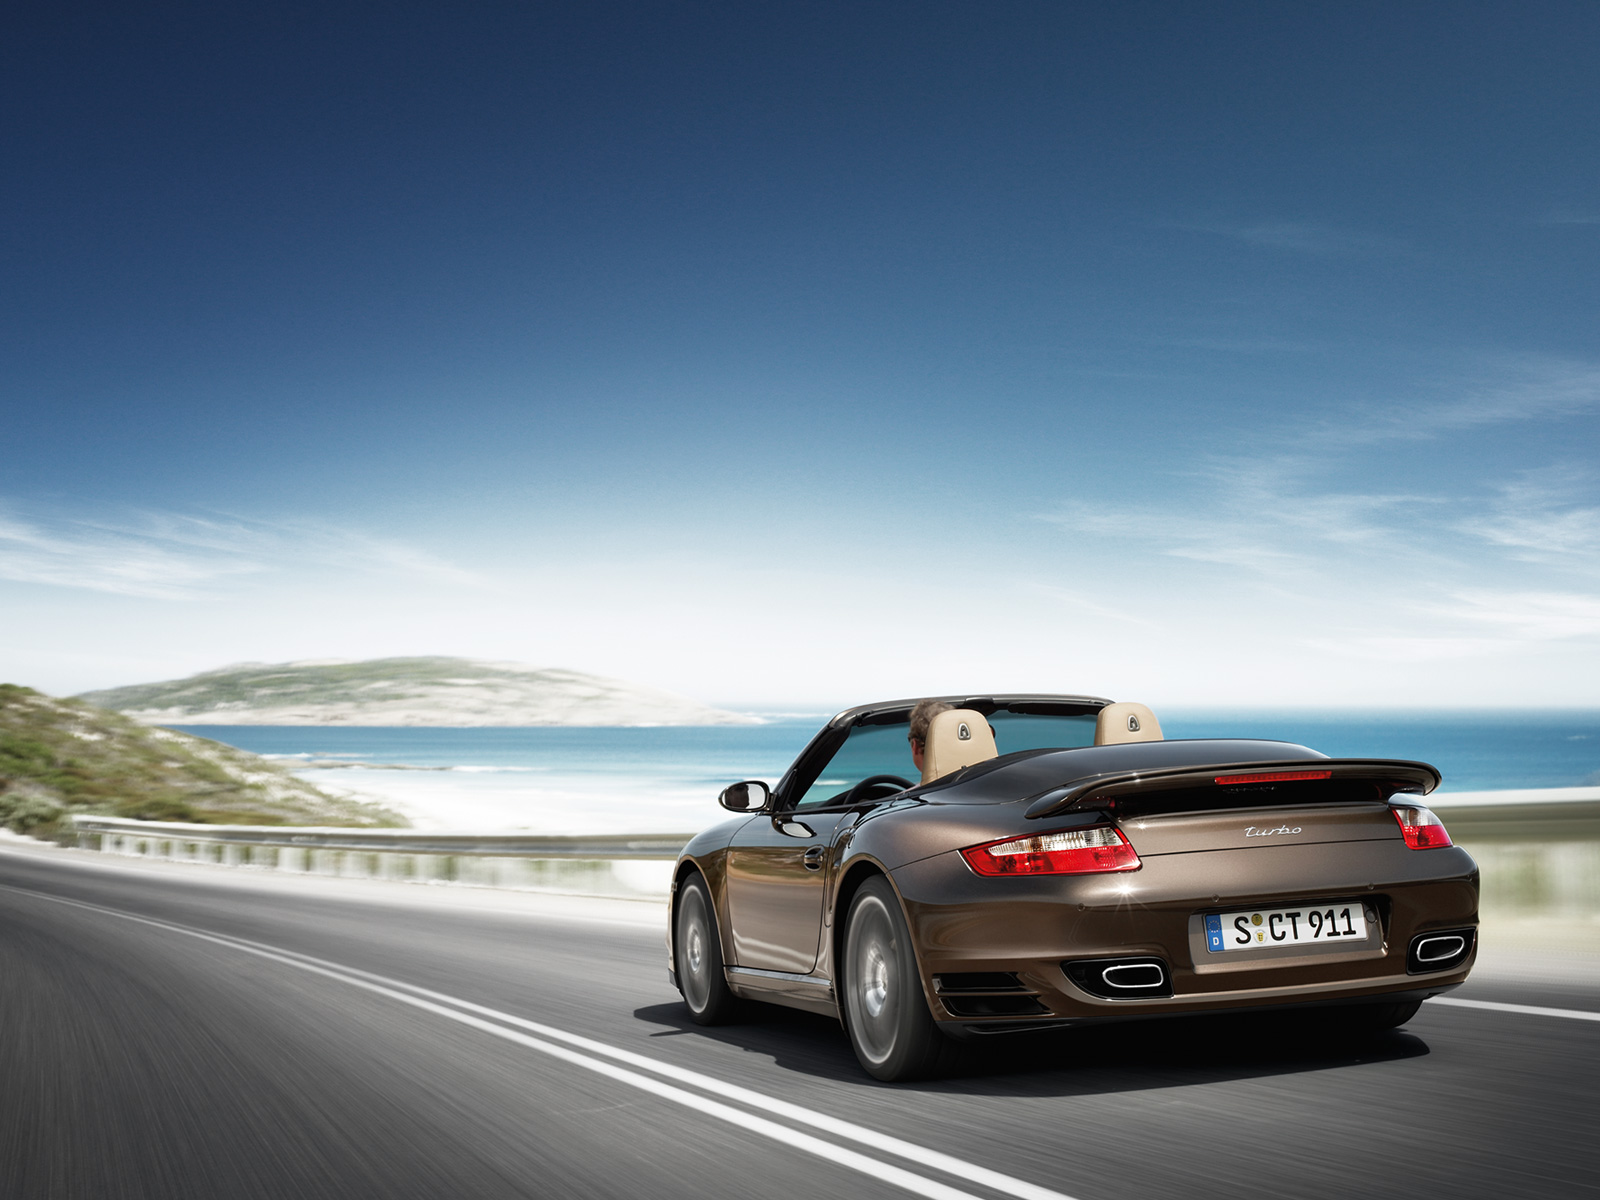 Porsche 911 Turbo Cabriolet (997) photo 46709